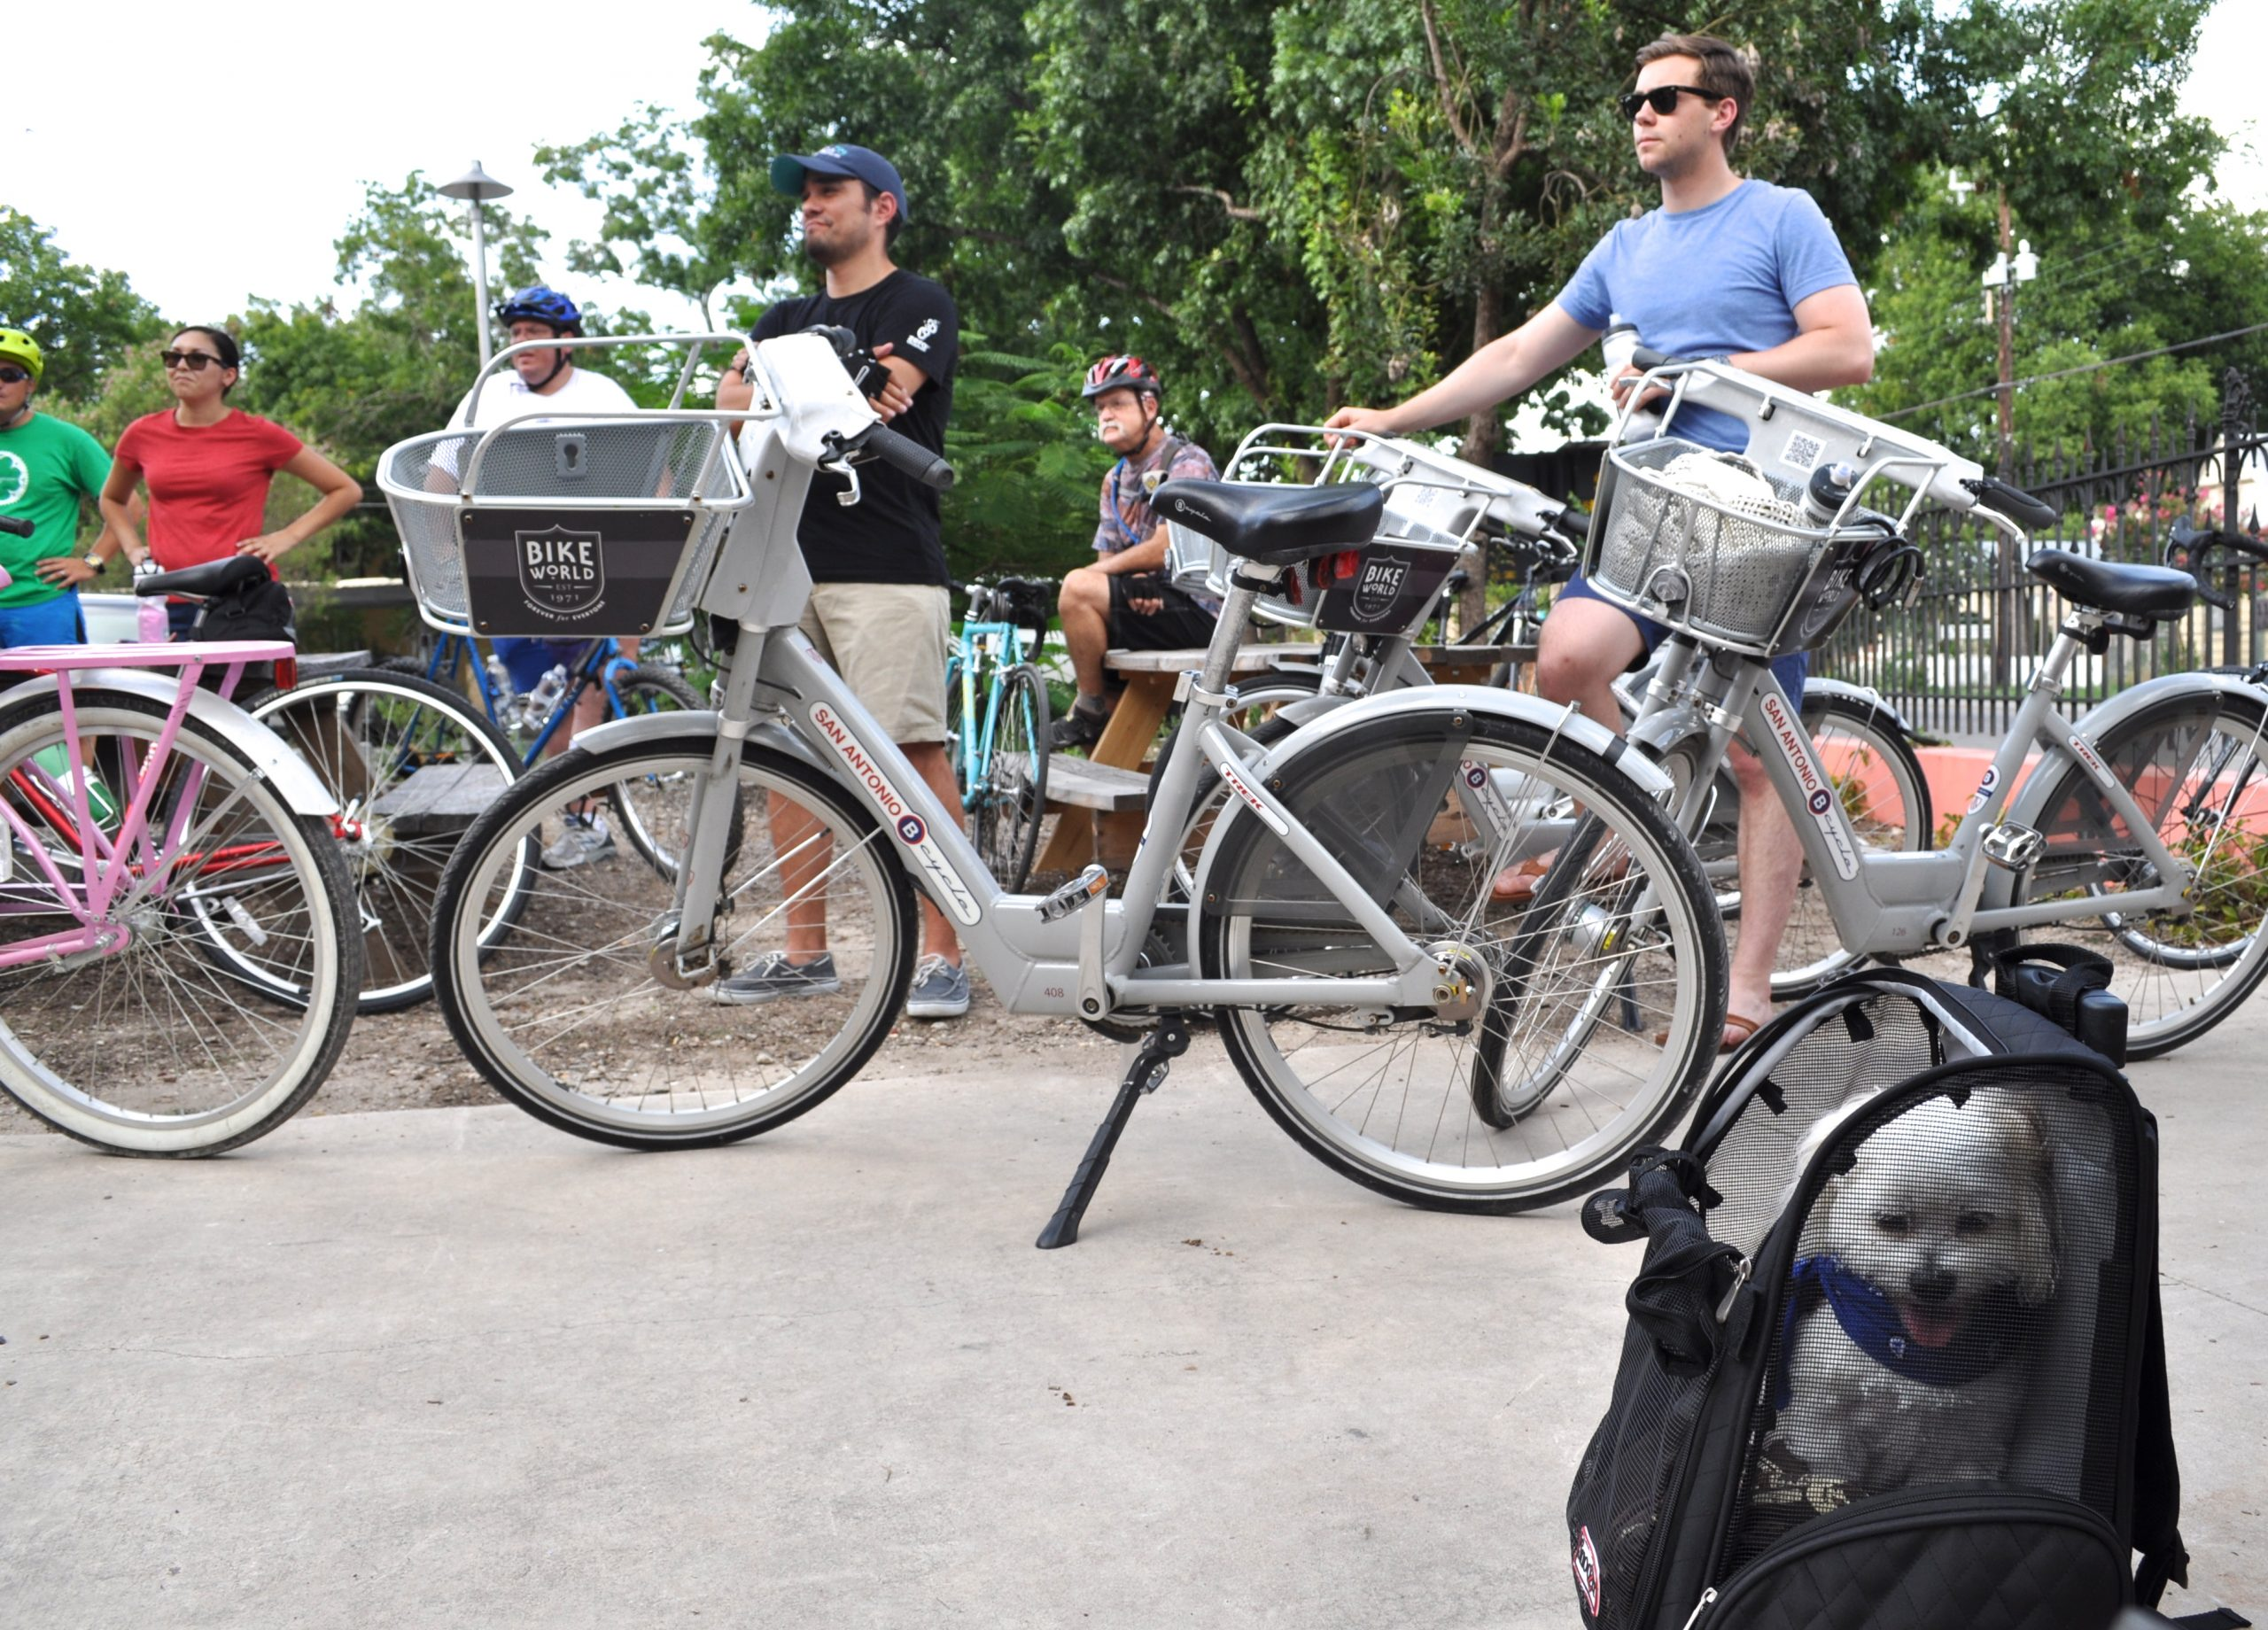 Sasha (right, backpack) listens to instructions with fellow riders for the first Something Monday ride. Photo by Iris Dimmick.